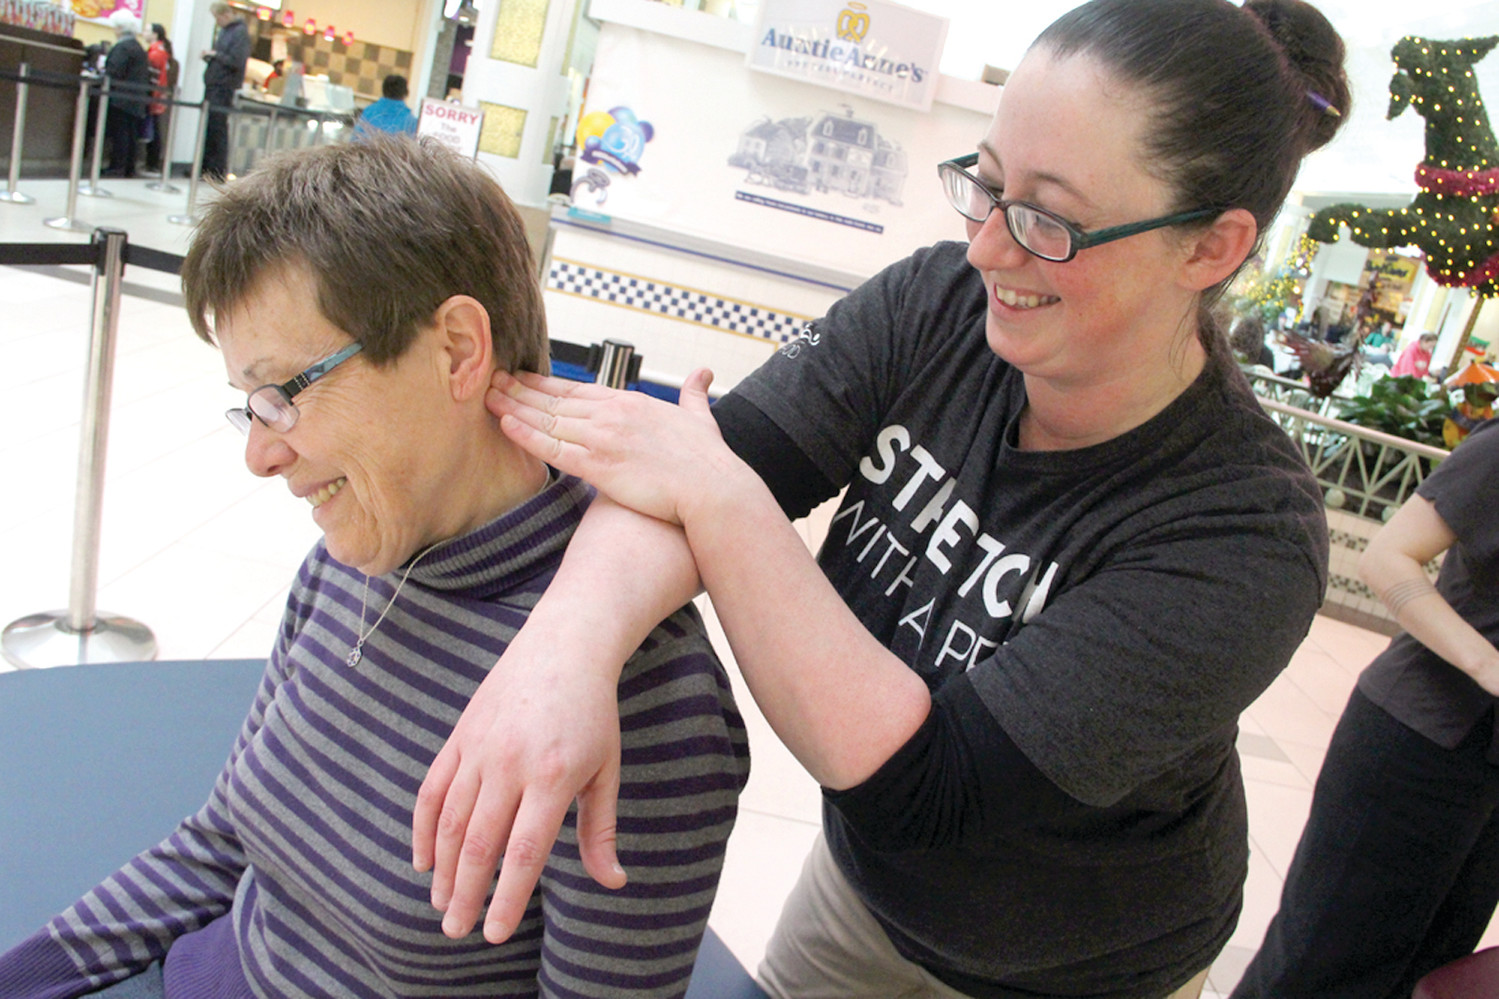 RELAXED: Alice Anderson loosens up under the hands of Sarah Jarvis of Massage Envoy that had a display at the mall.